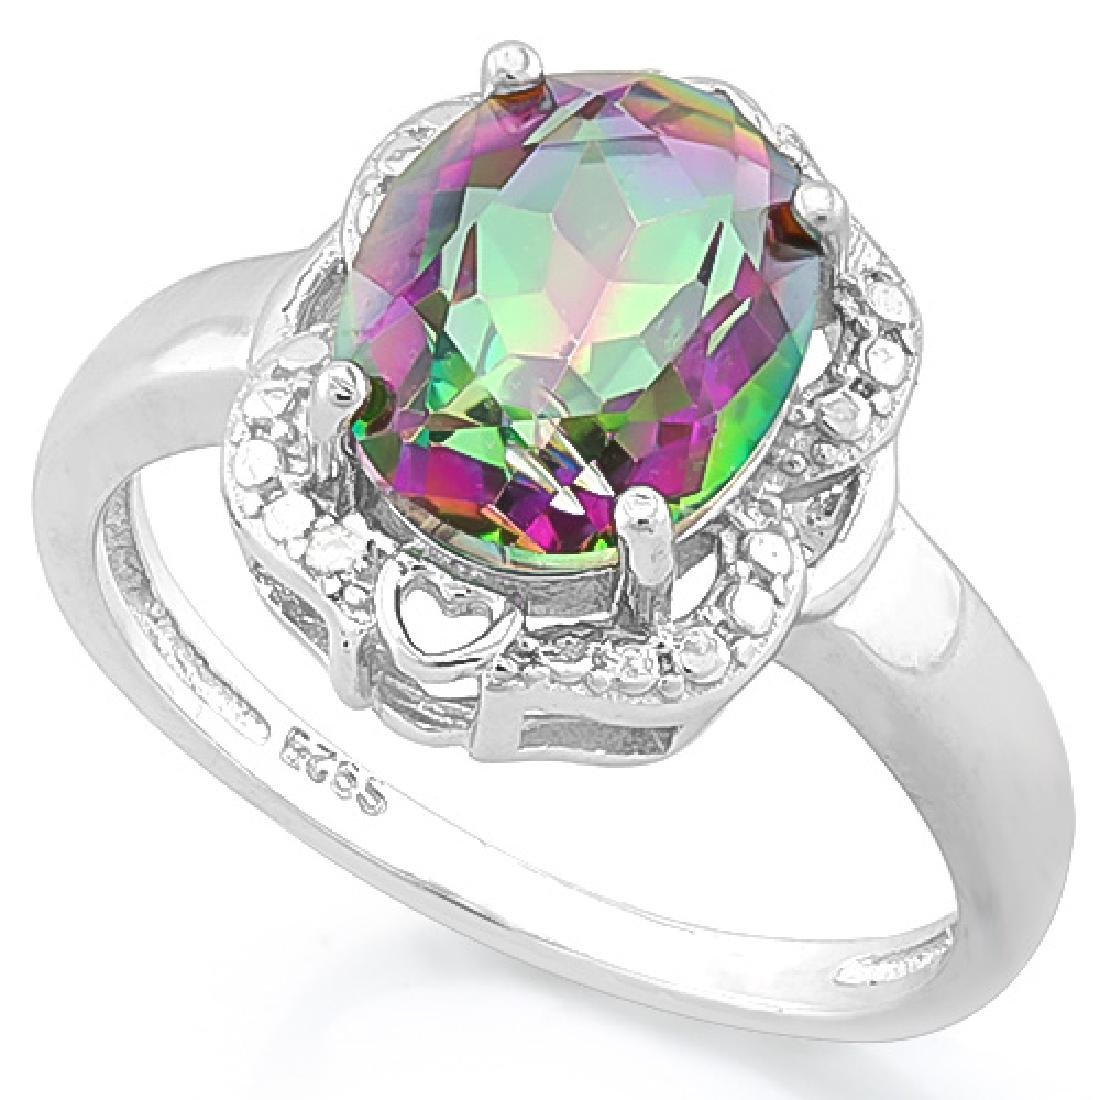 2 3/5 CARAT MYSTIC GEMSTONE & DIAMOND 925 STERLING SILV